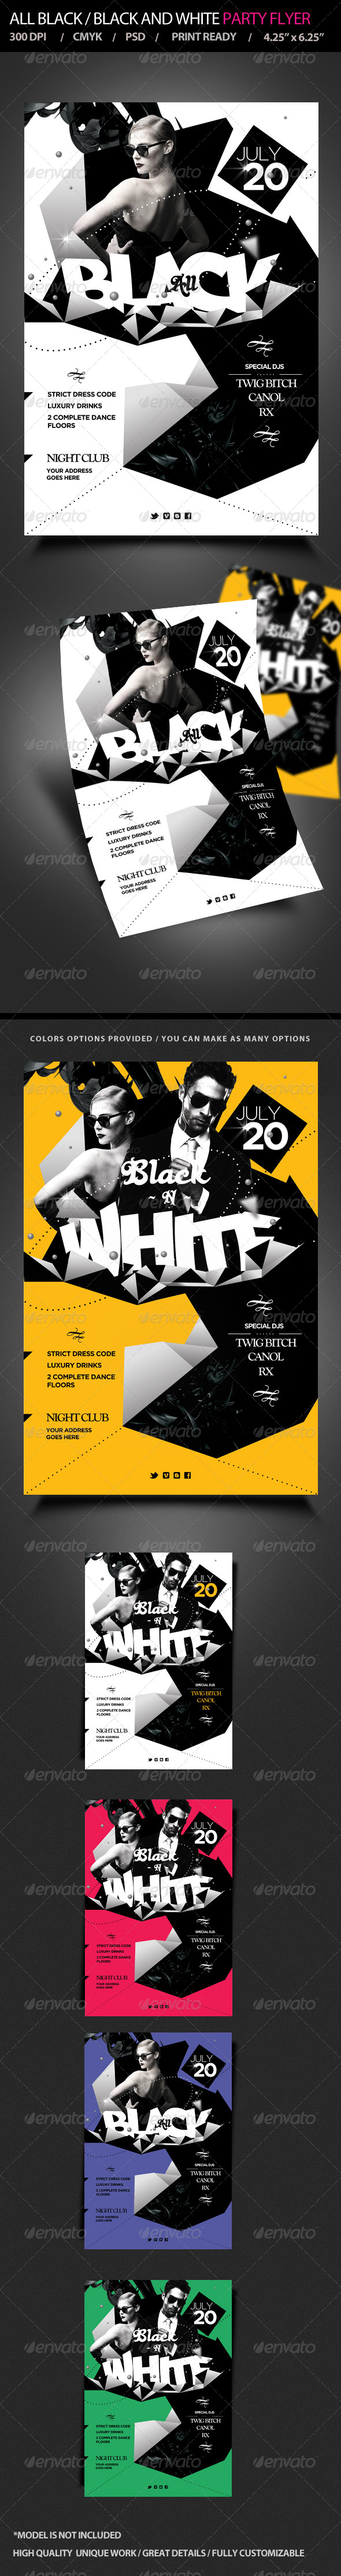 All Black / Black and White  Party Flyer - Clubs & Parties Events